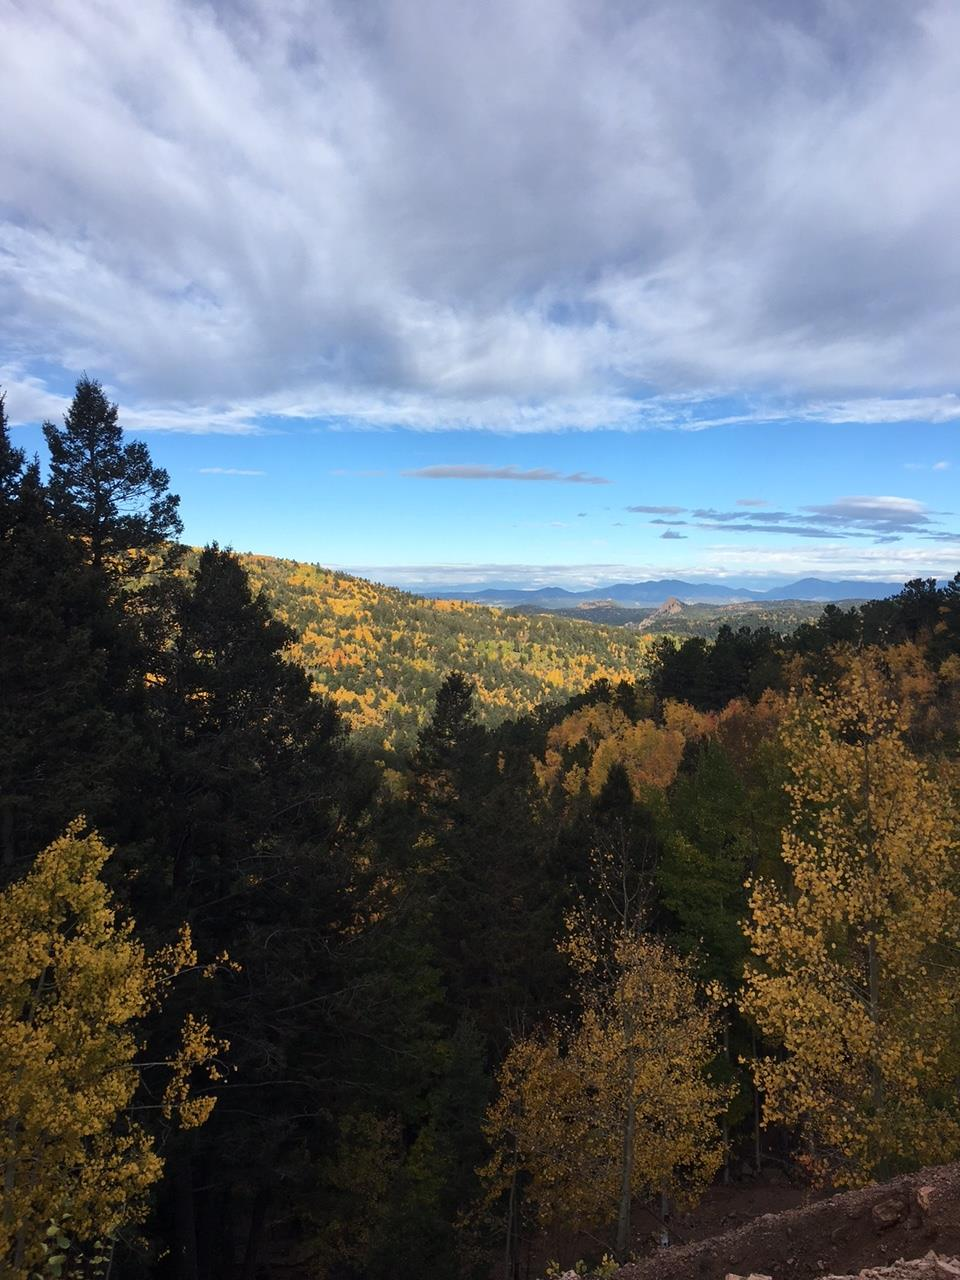 Leaves changing in Divide, CO